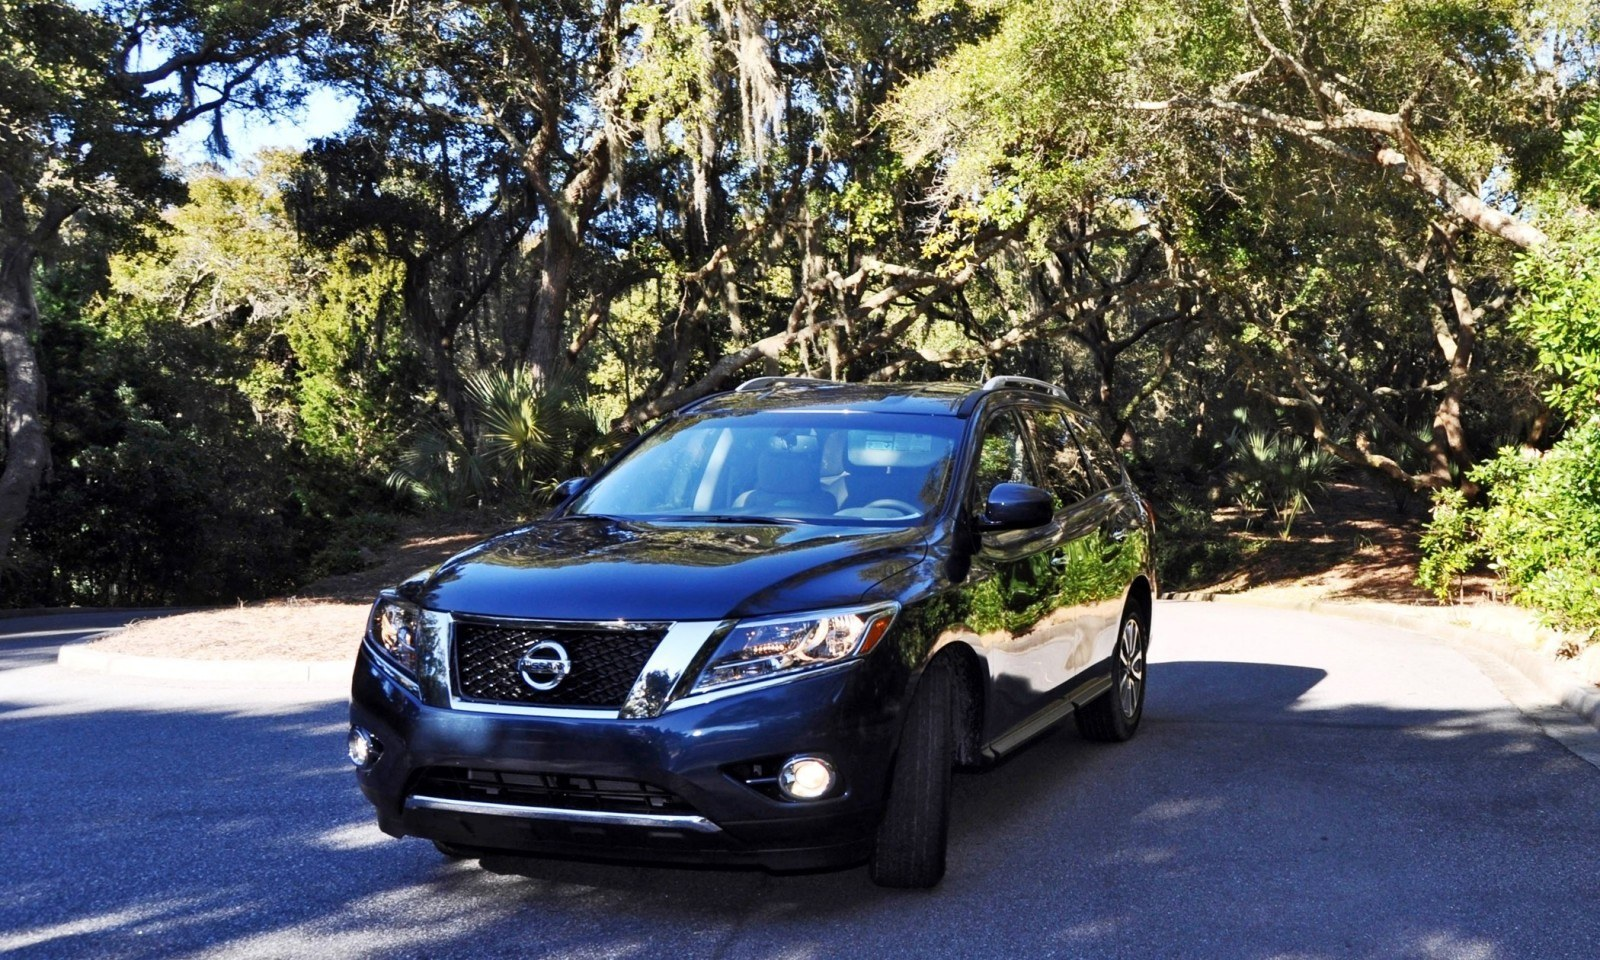 Road Test Review - 2015 Nissan Pathfinder SV 4WD 120